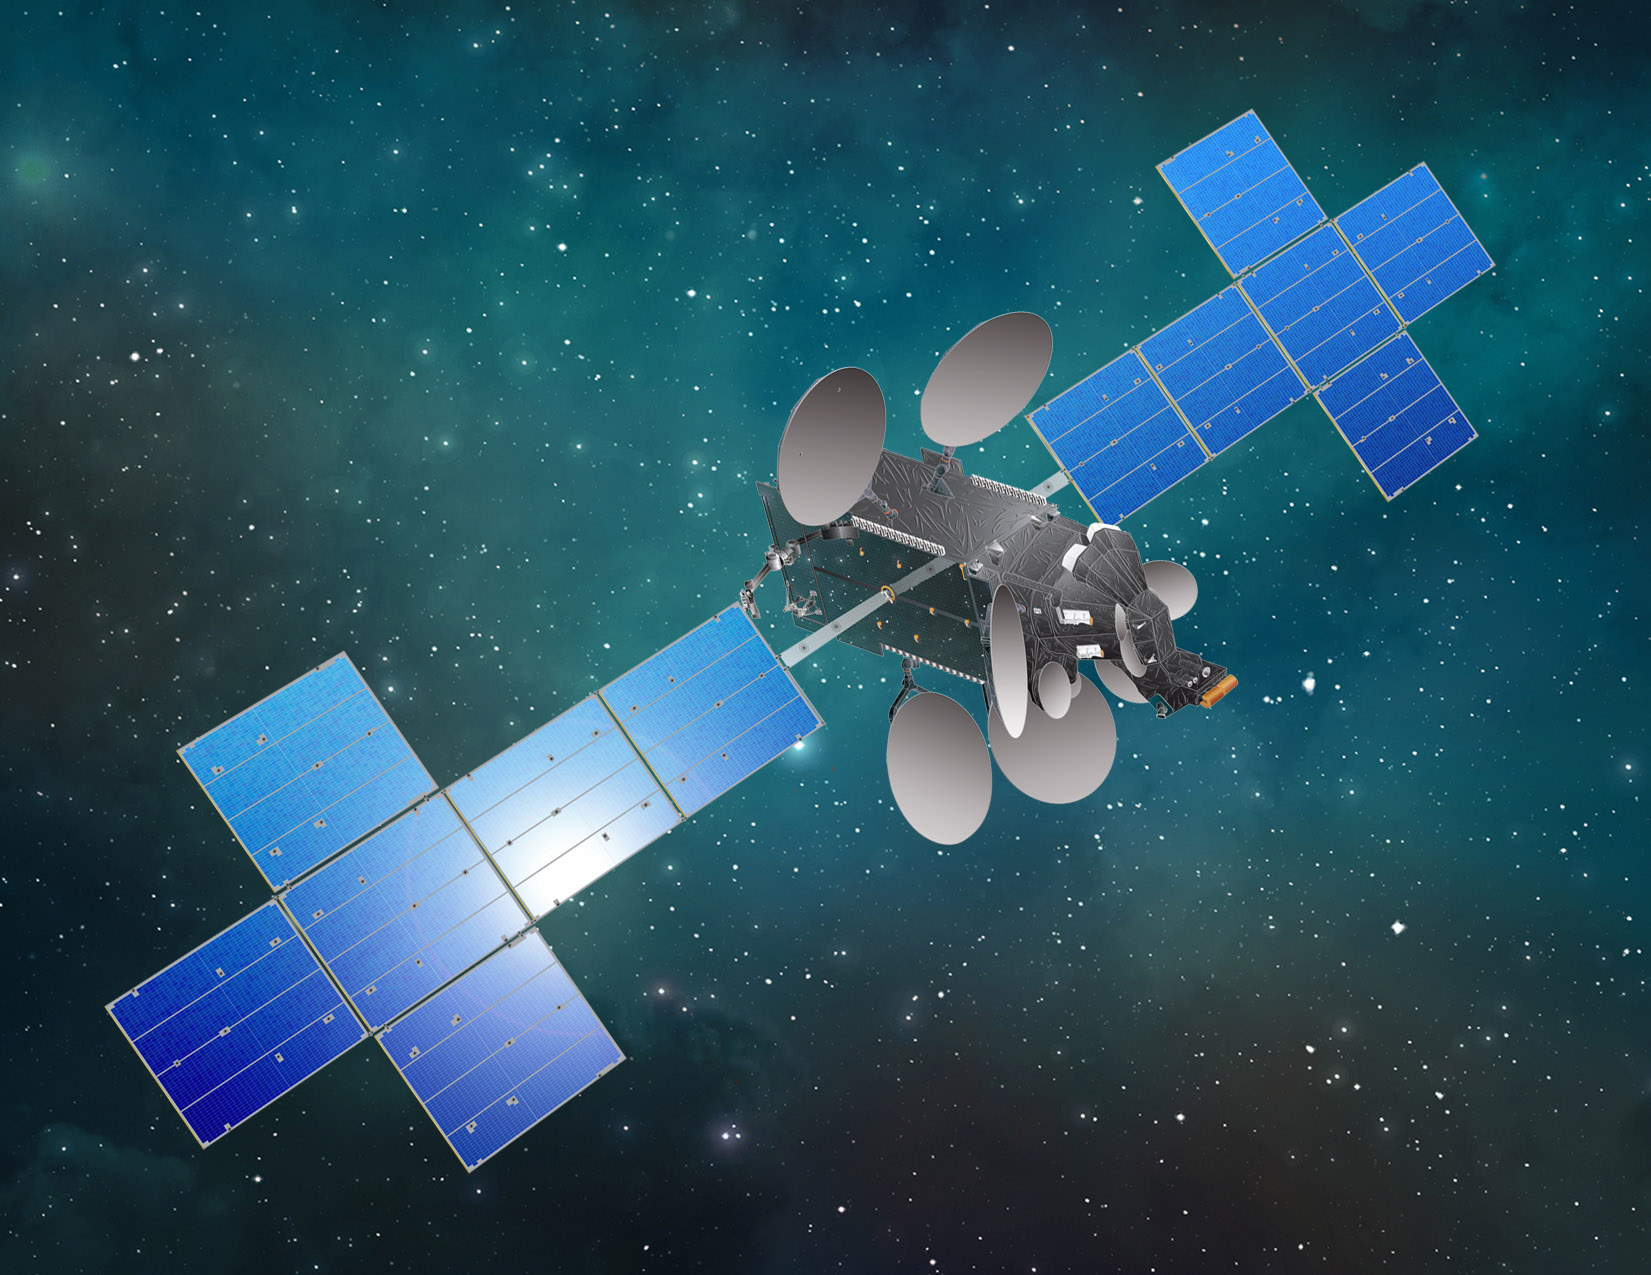 Brazil S Star One Taps Ssl For Satellite Arianespace For